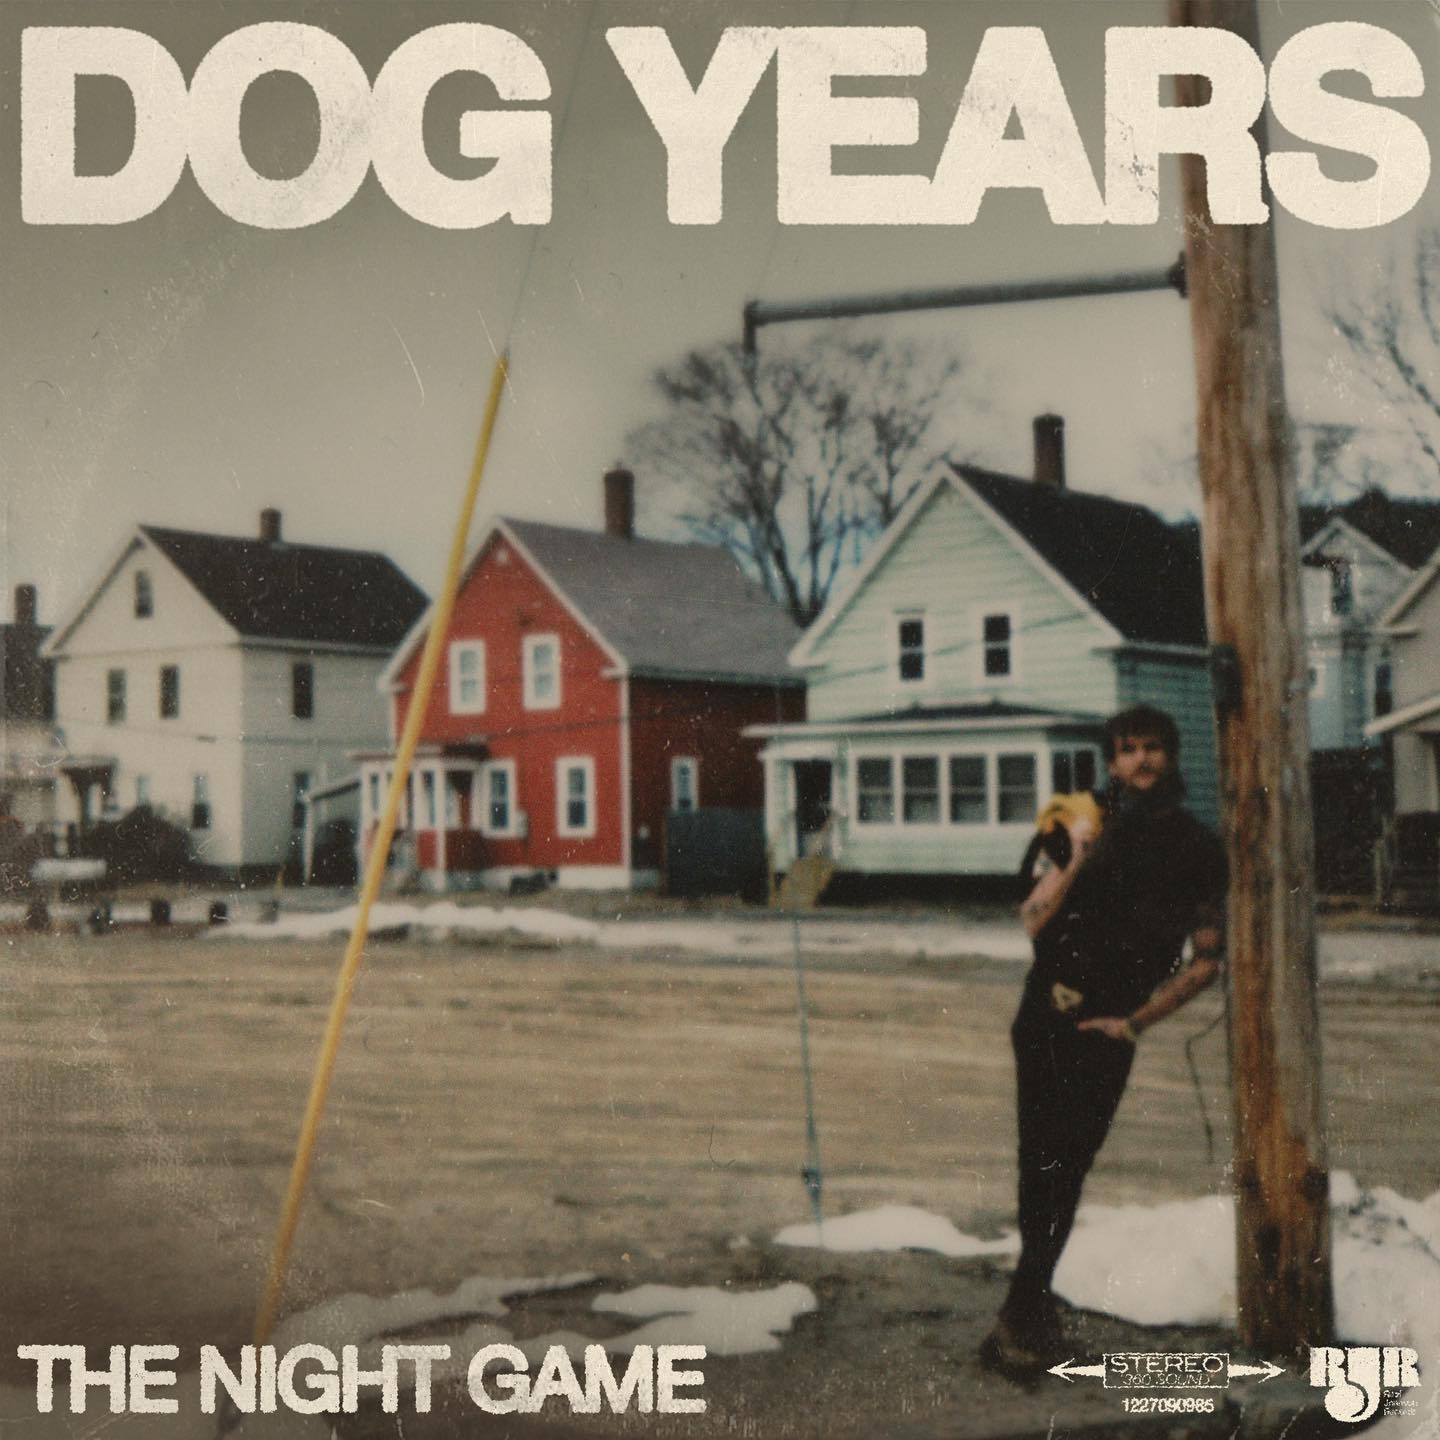 The Night Game-Dog Years